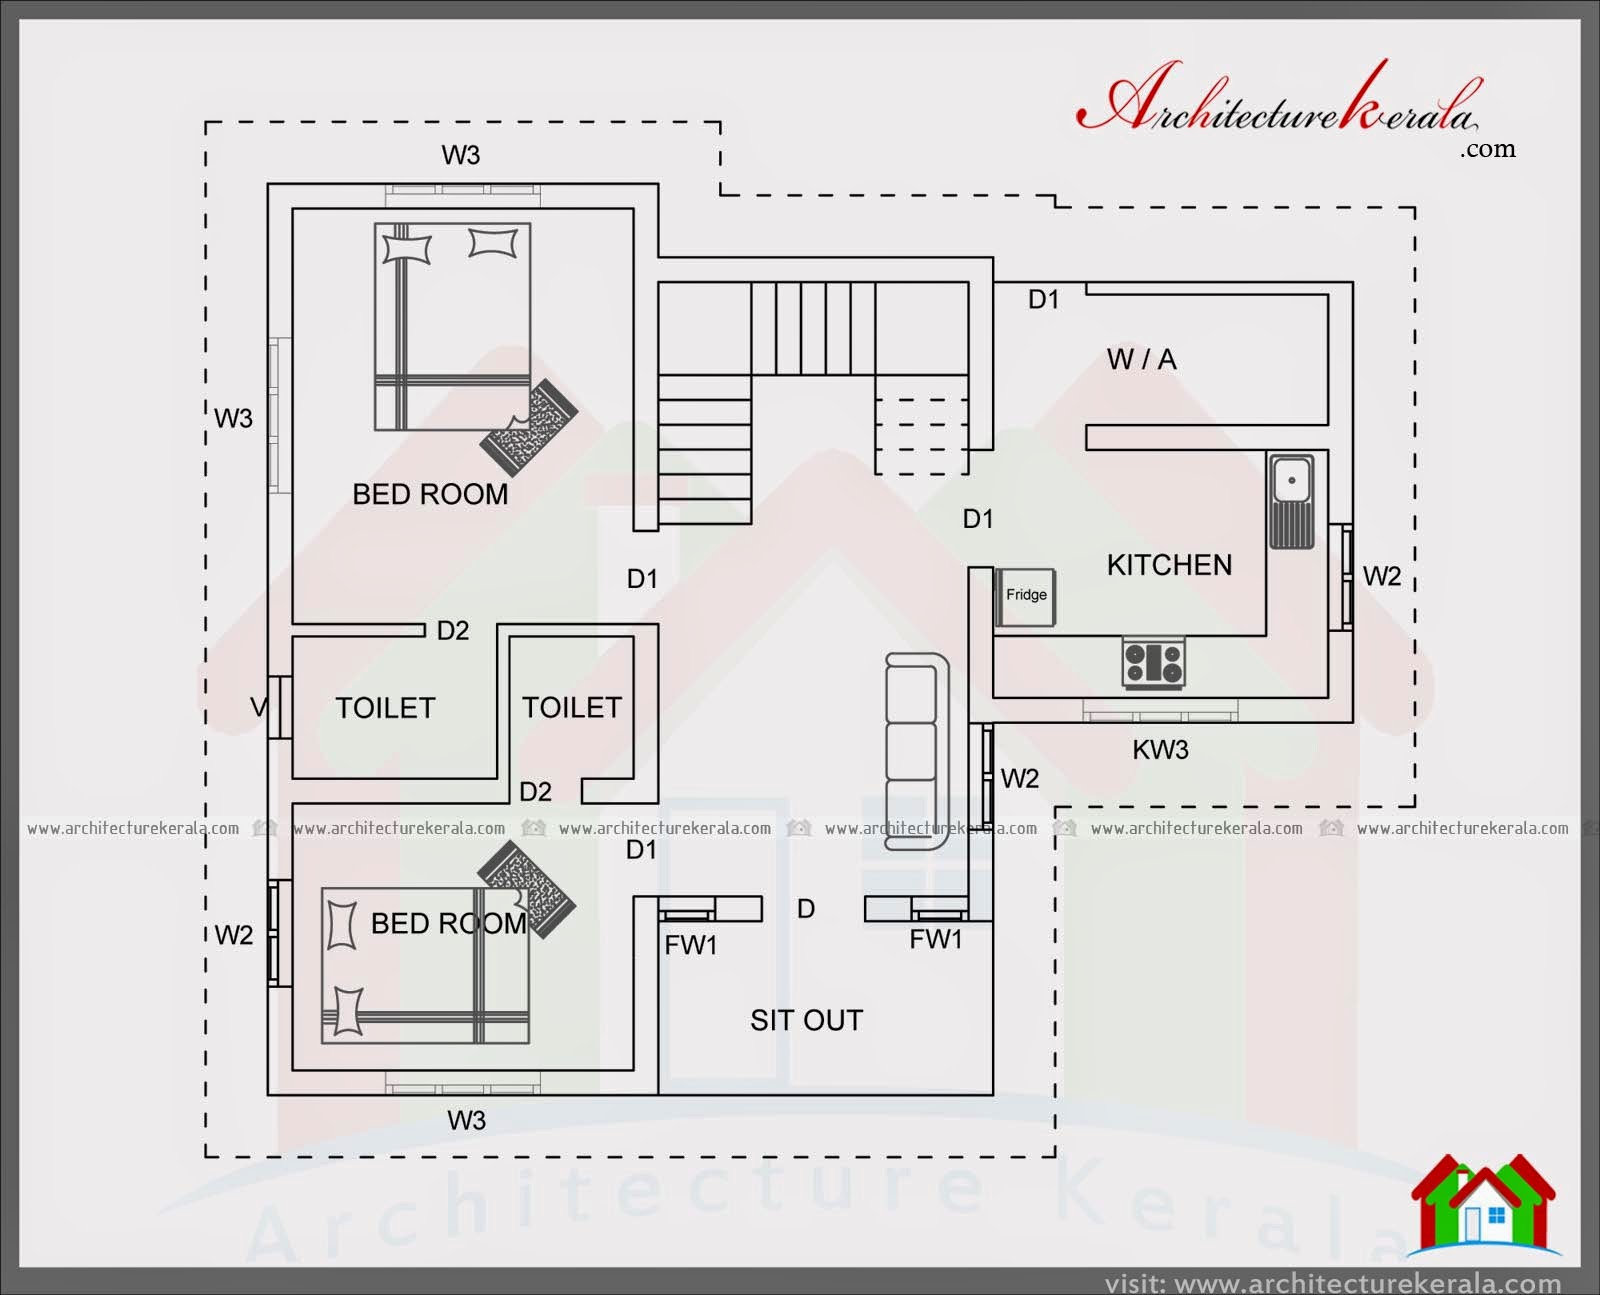 2 bedroom house plans kerala style 1200 sq feet amazing for 1200 sq ft ground floor plans